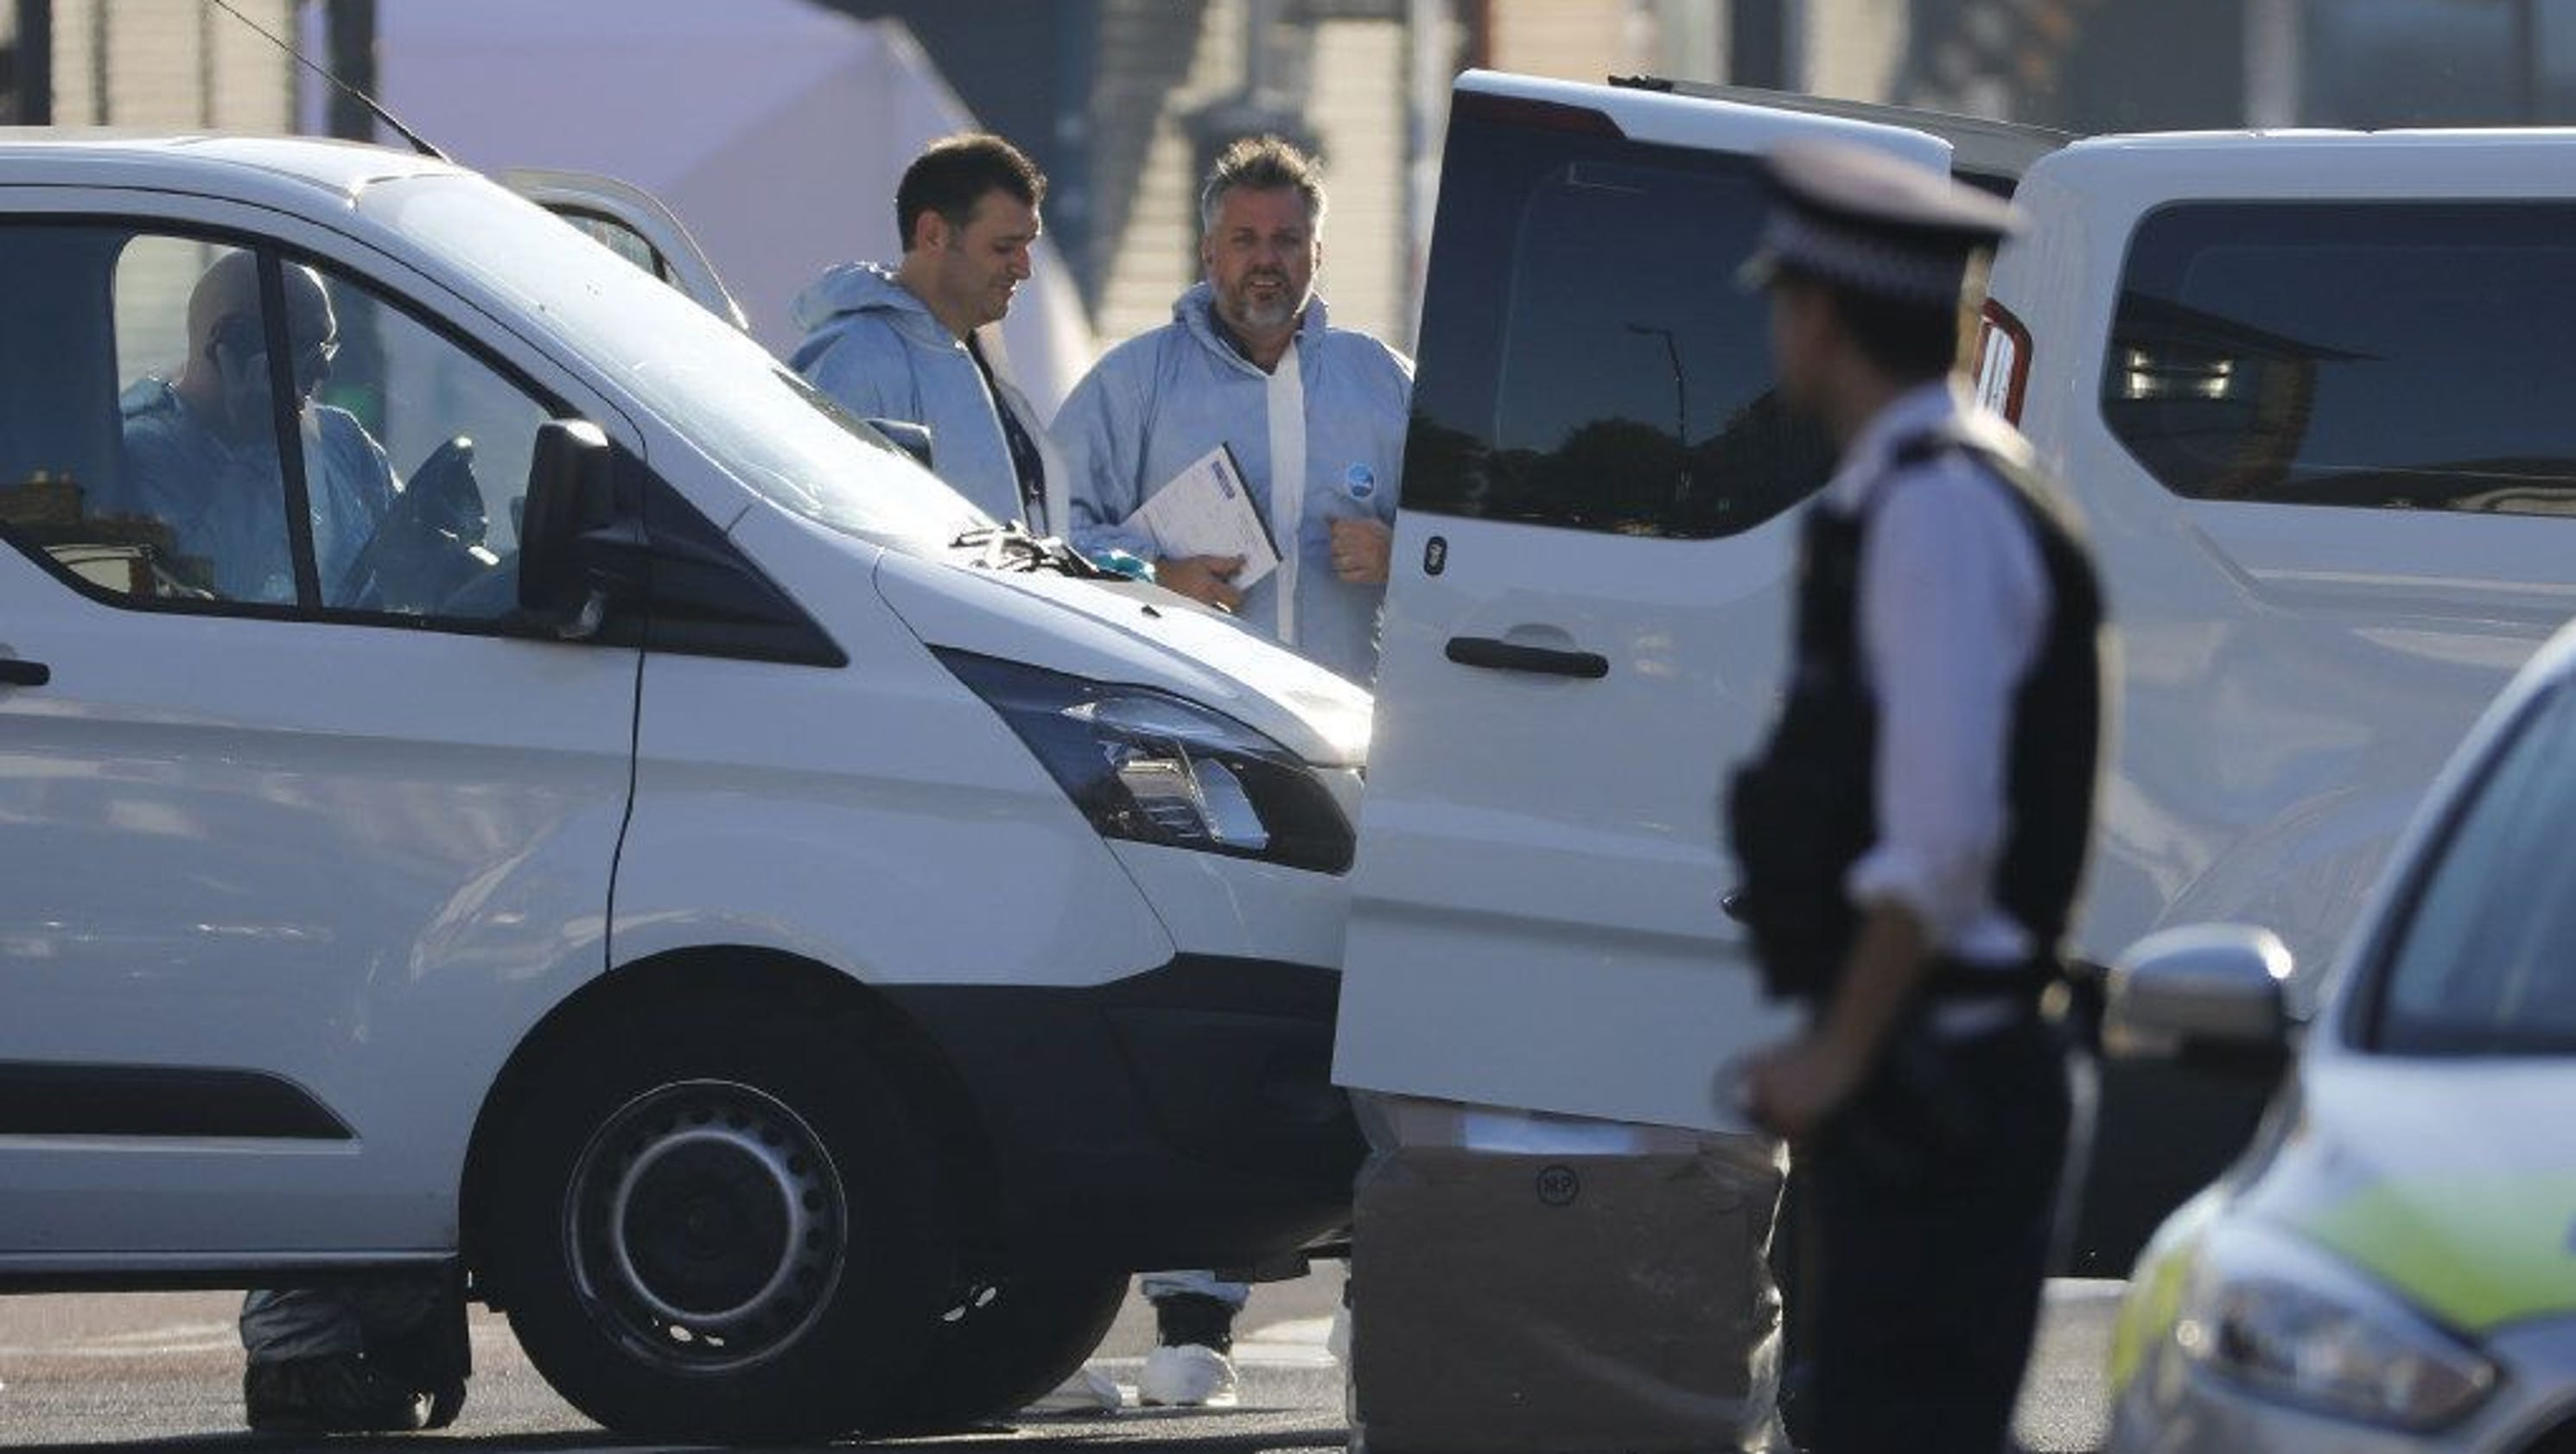 Suspect in London van attack arrested on terror charges